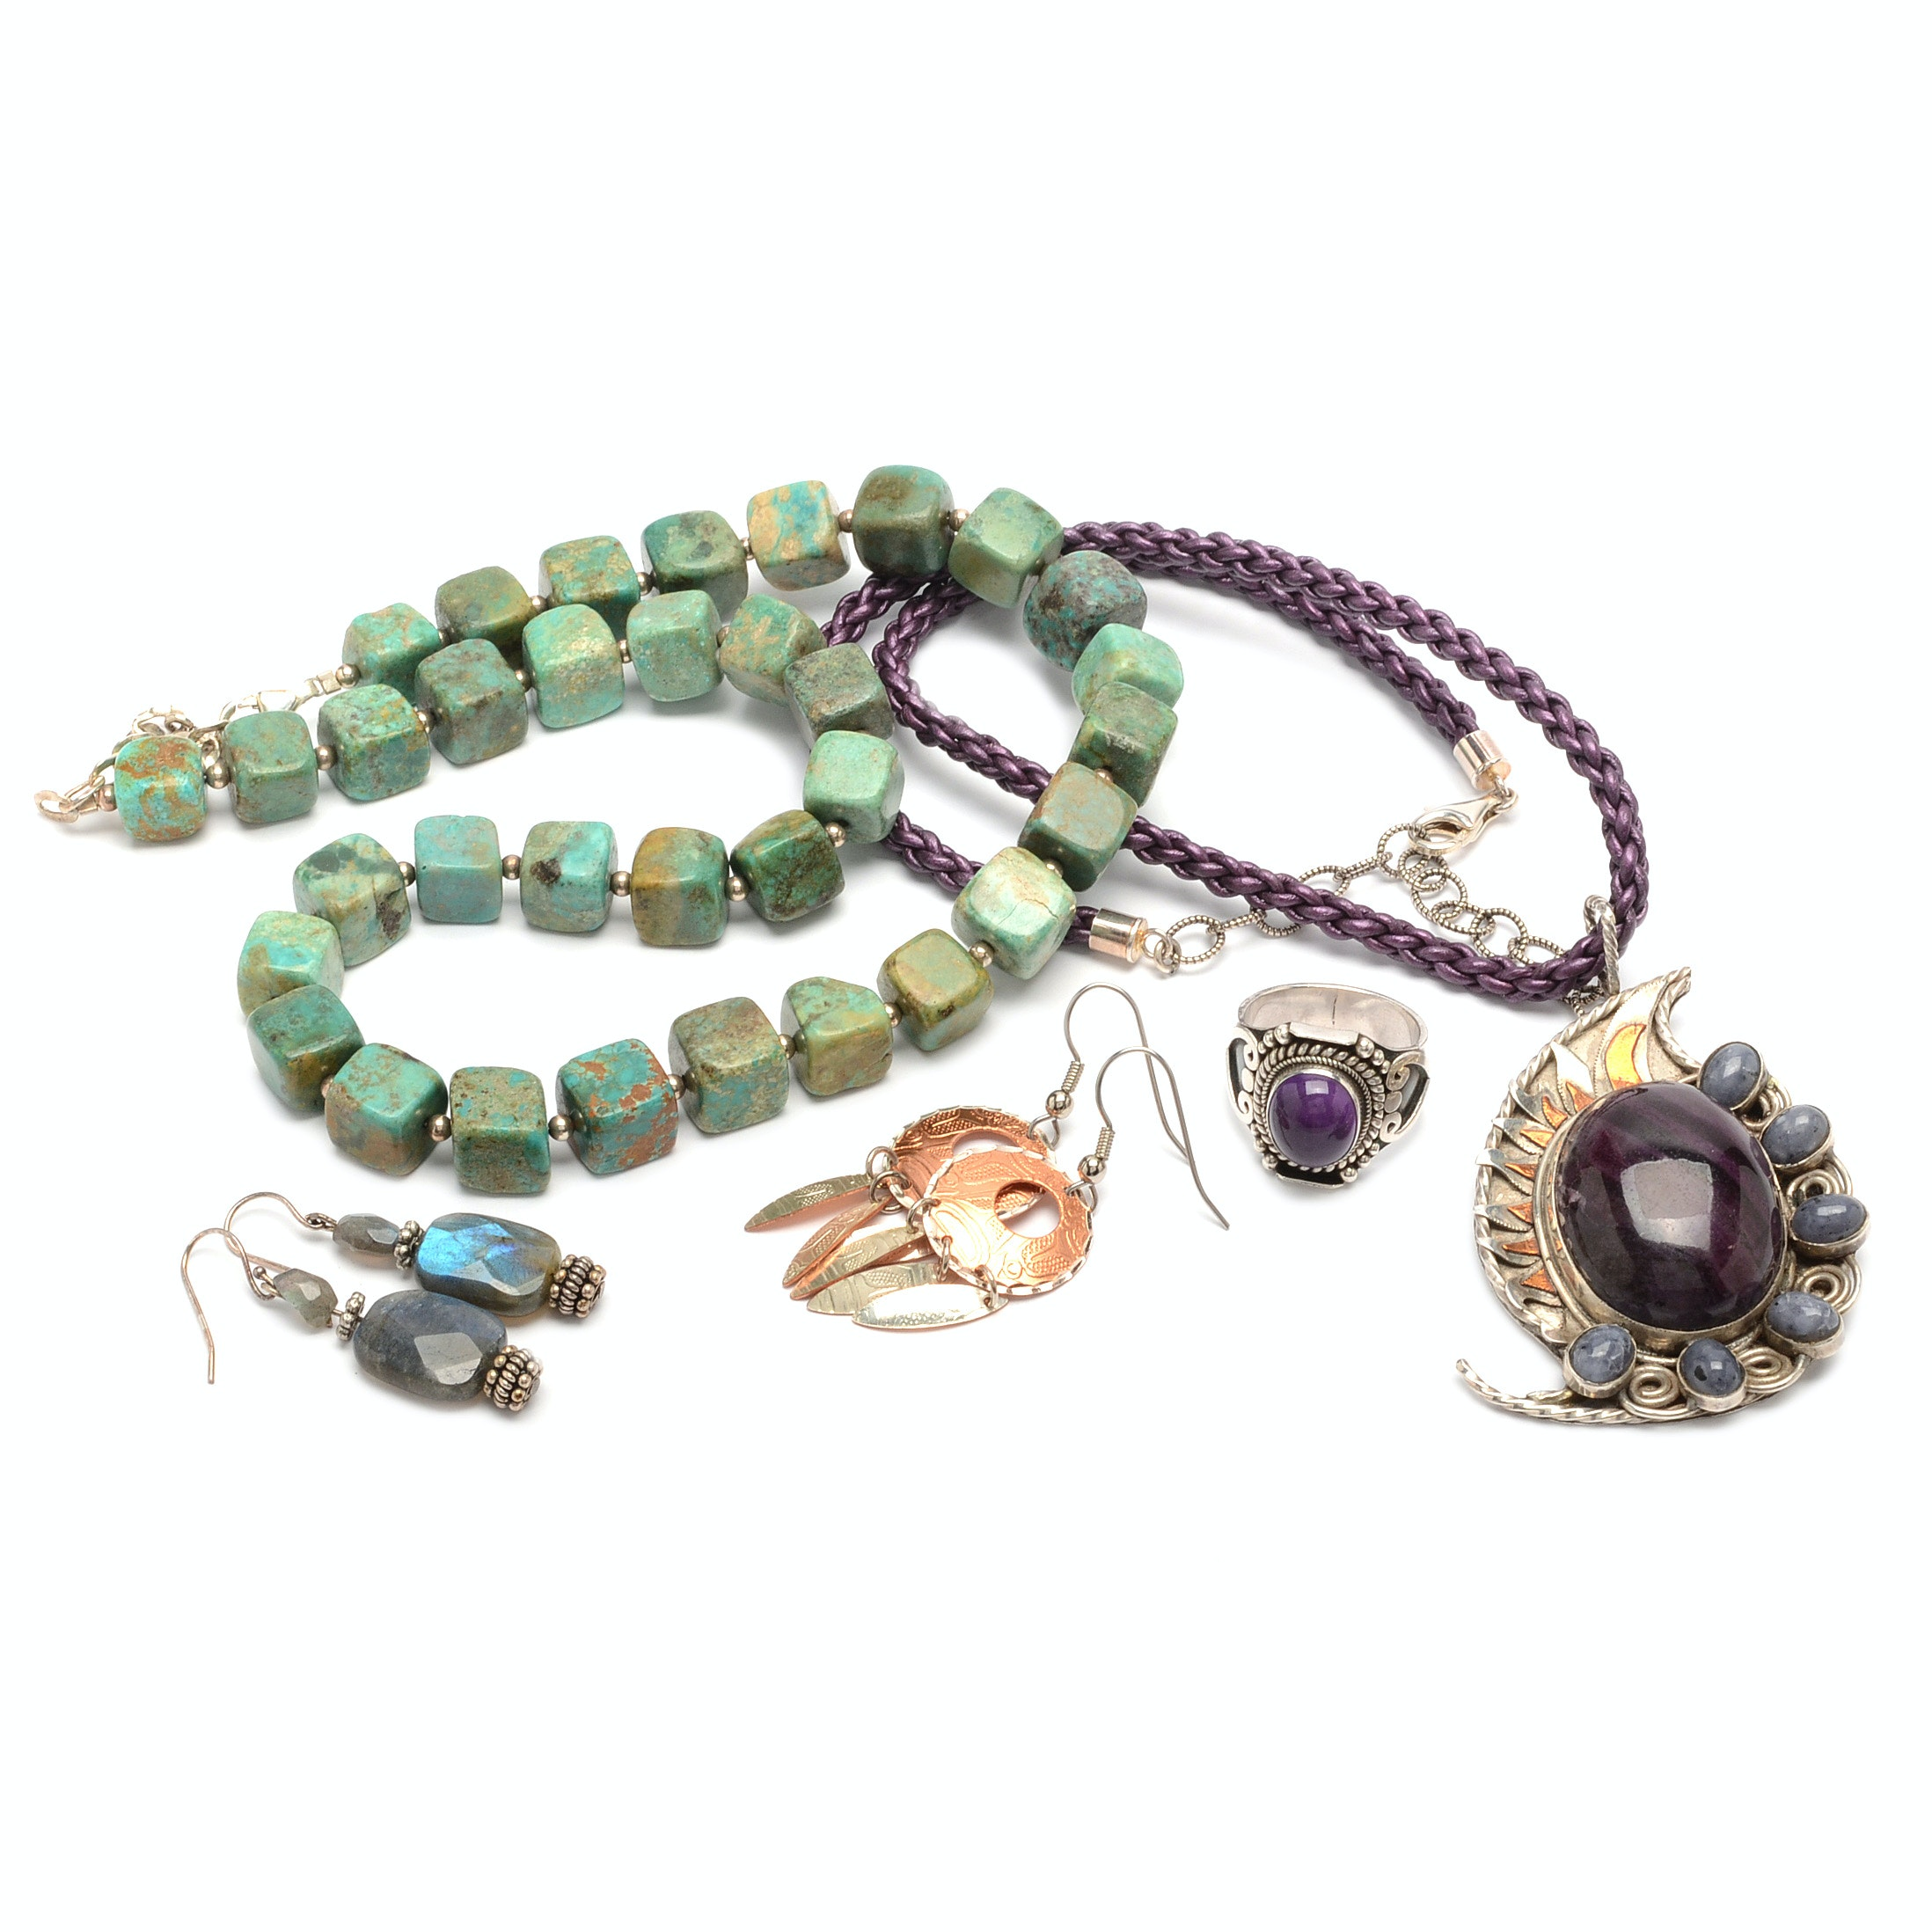 Sterling Silver and Gemstone Necklaces and Ring Including Barse